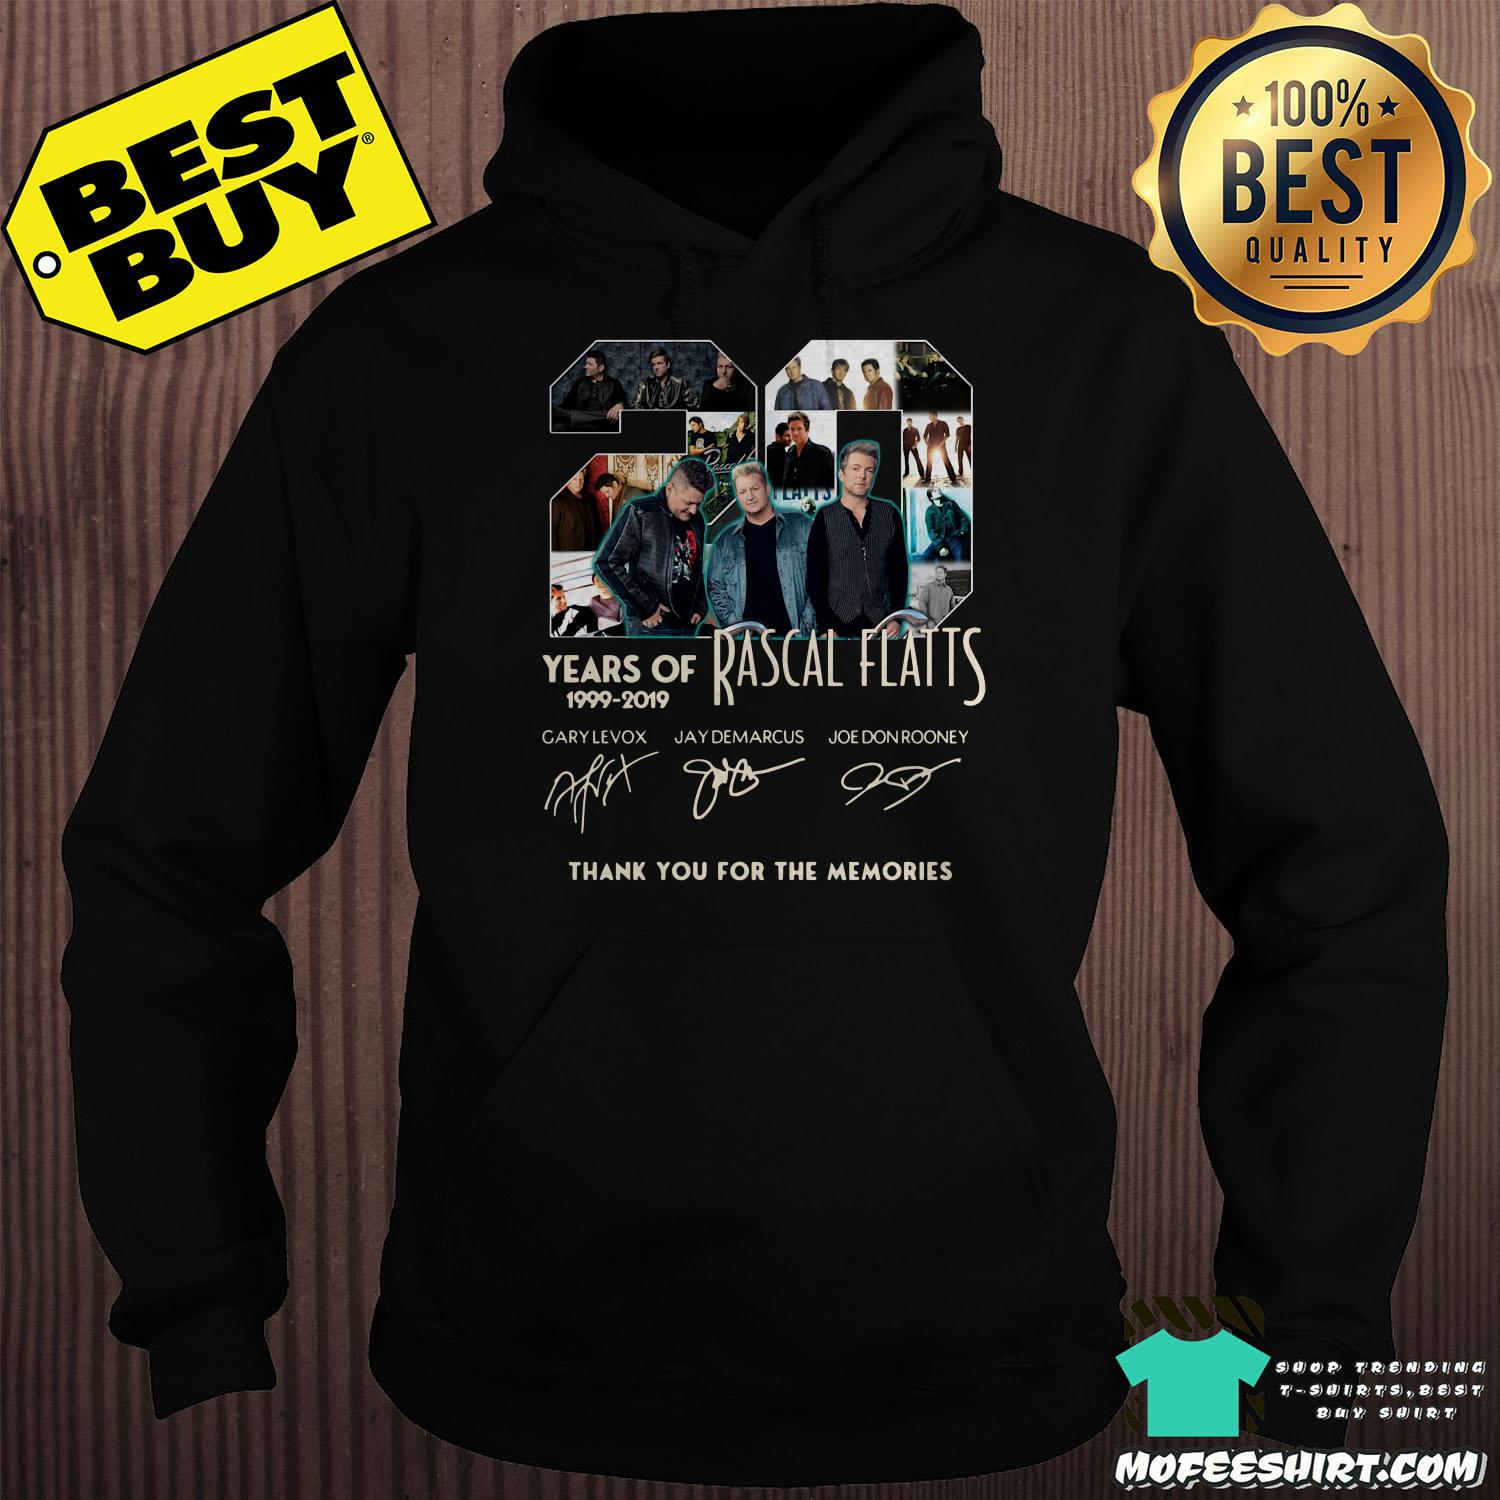 20 years of rascal flatts 1999 2019 thank you for the memories signature hoodie - 20 Years of Rascal Flatts 1999-2019 thank you for the memories signature shirt